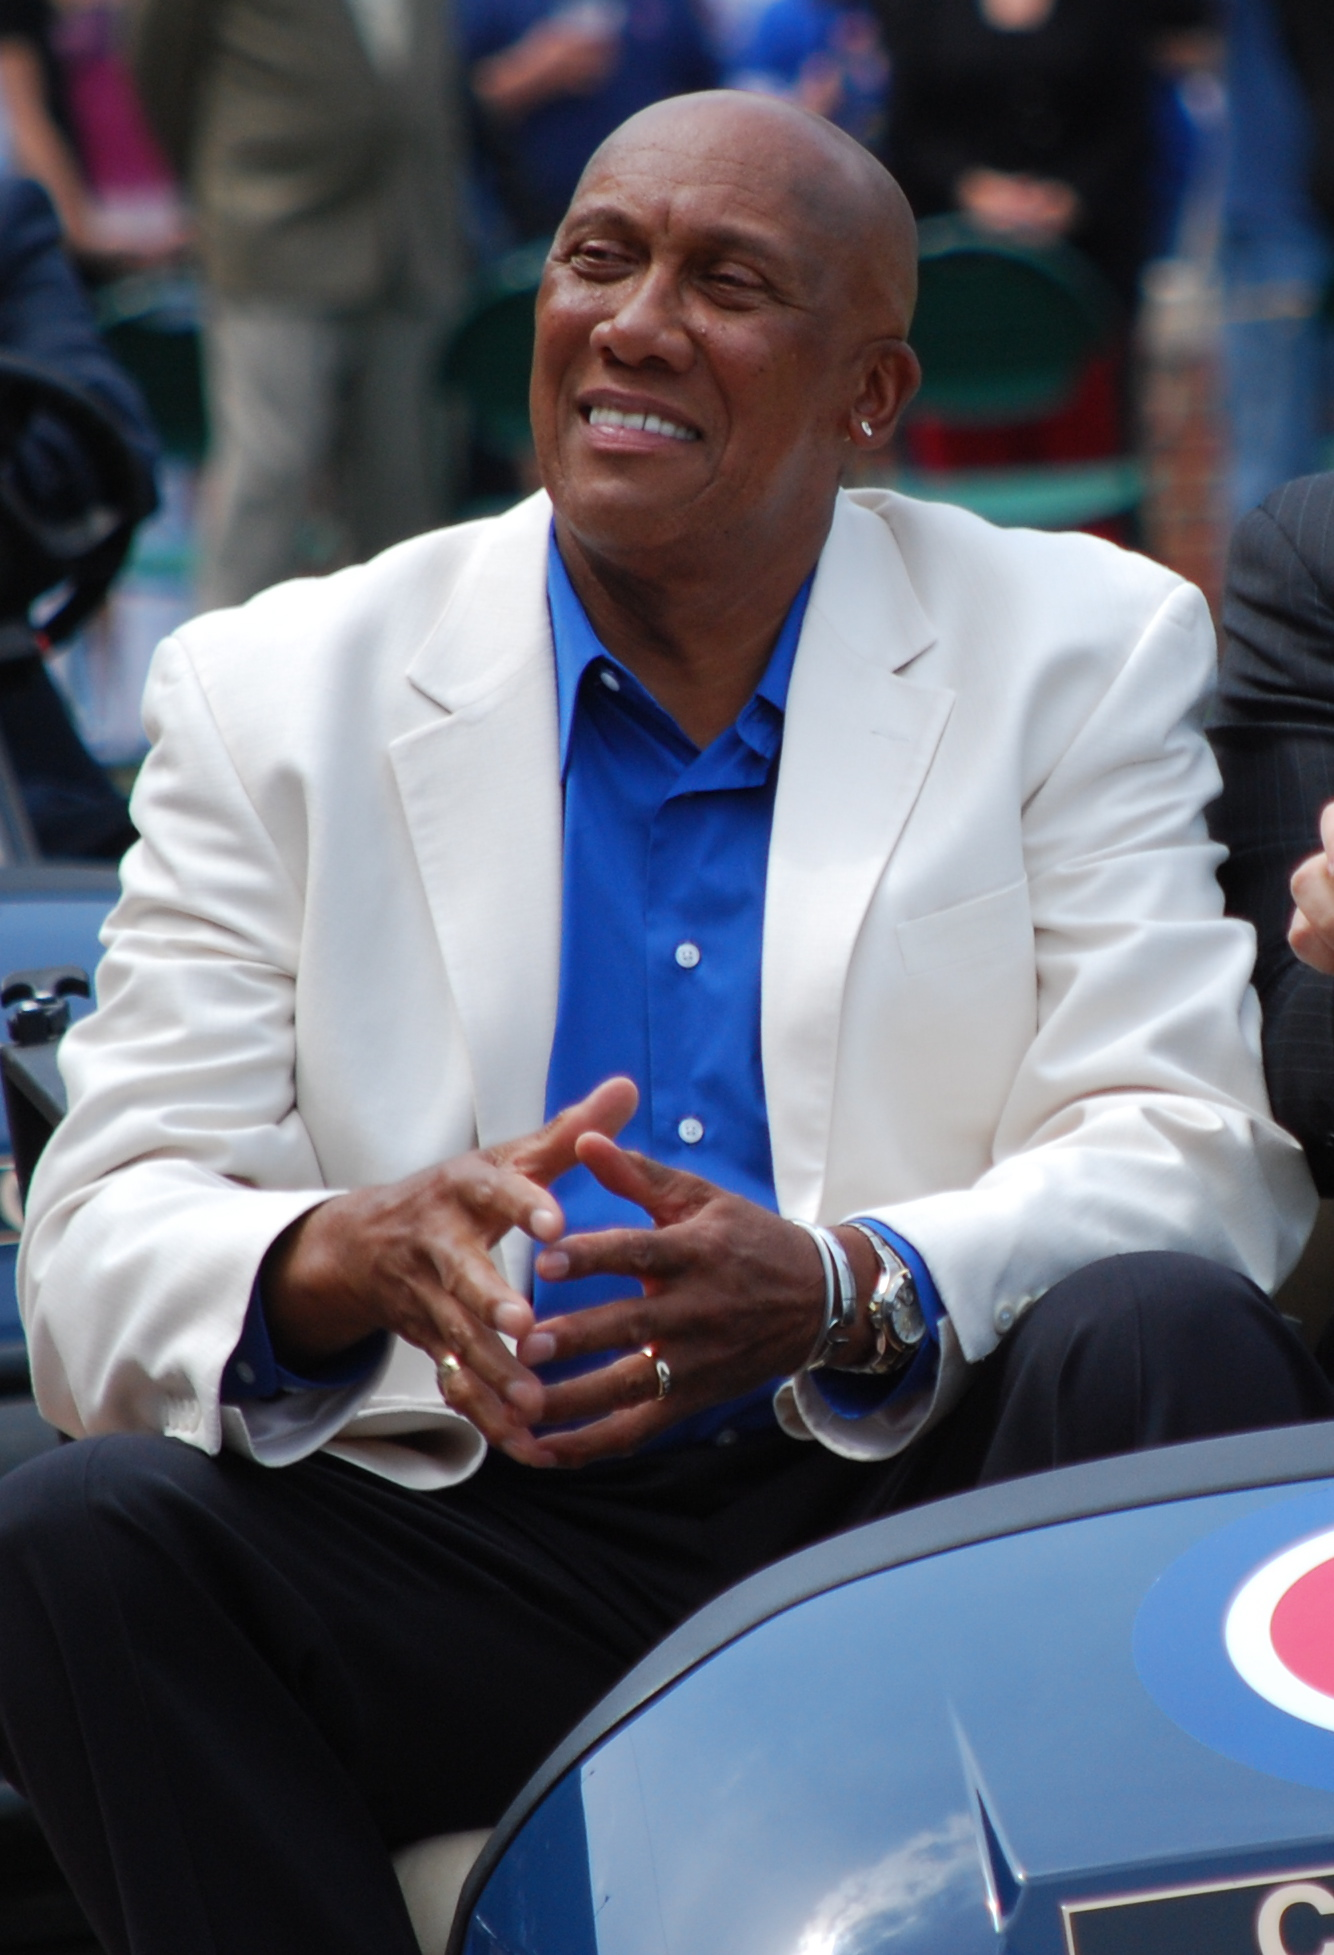 The 76-year old son of father (?) and mother(?) Ferguson Jenkins in 2019 photo. Ferguson Jenkins earned a  million dollar salary - leaving the net worth at 5 million in 2019